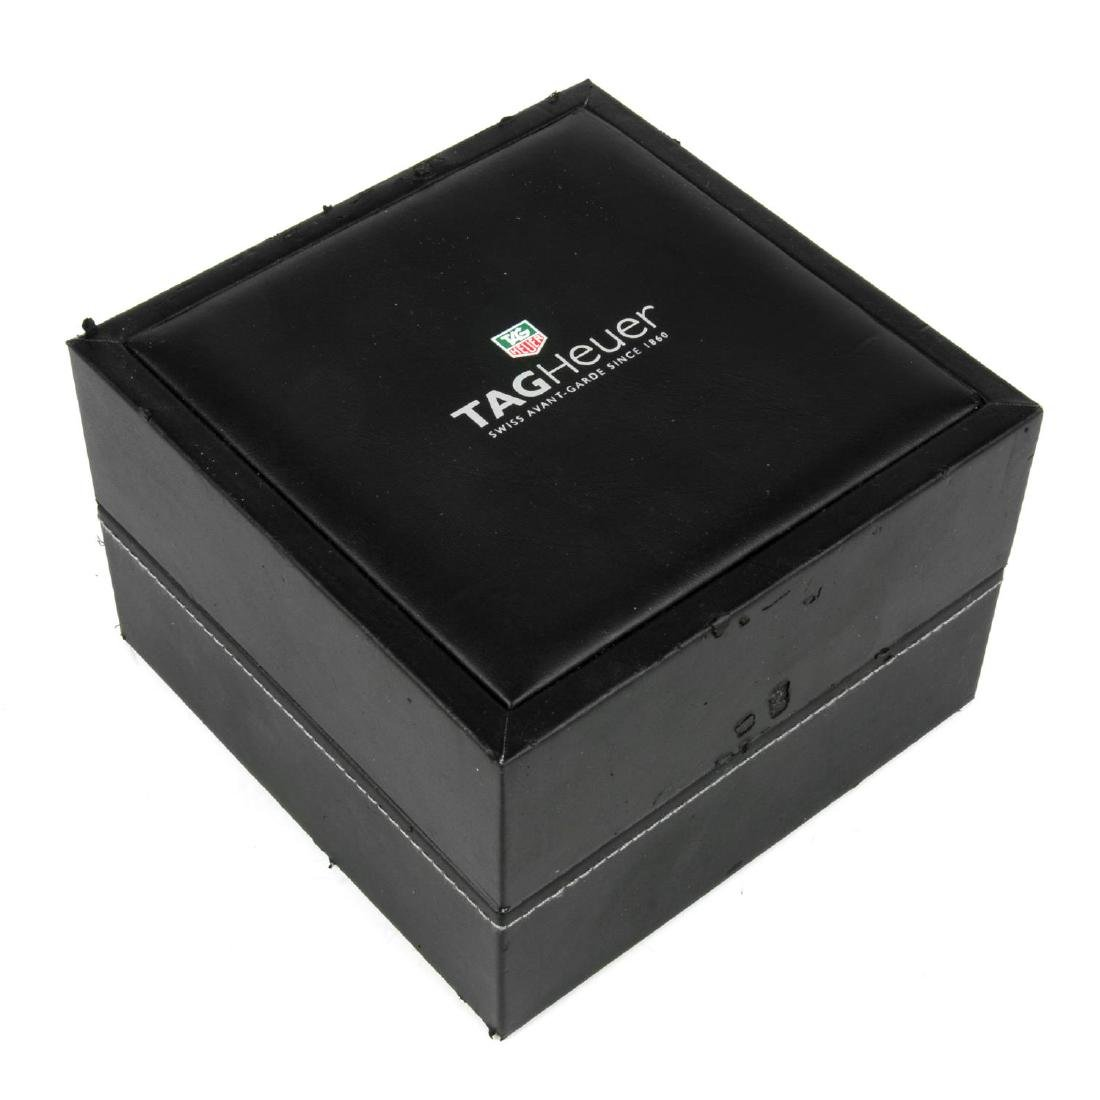 TAG HEUER - a group of six watch boxes, some